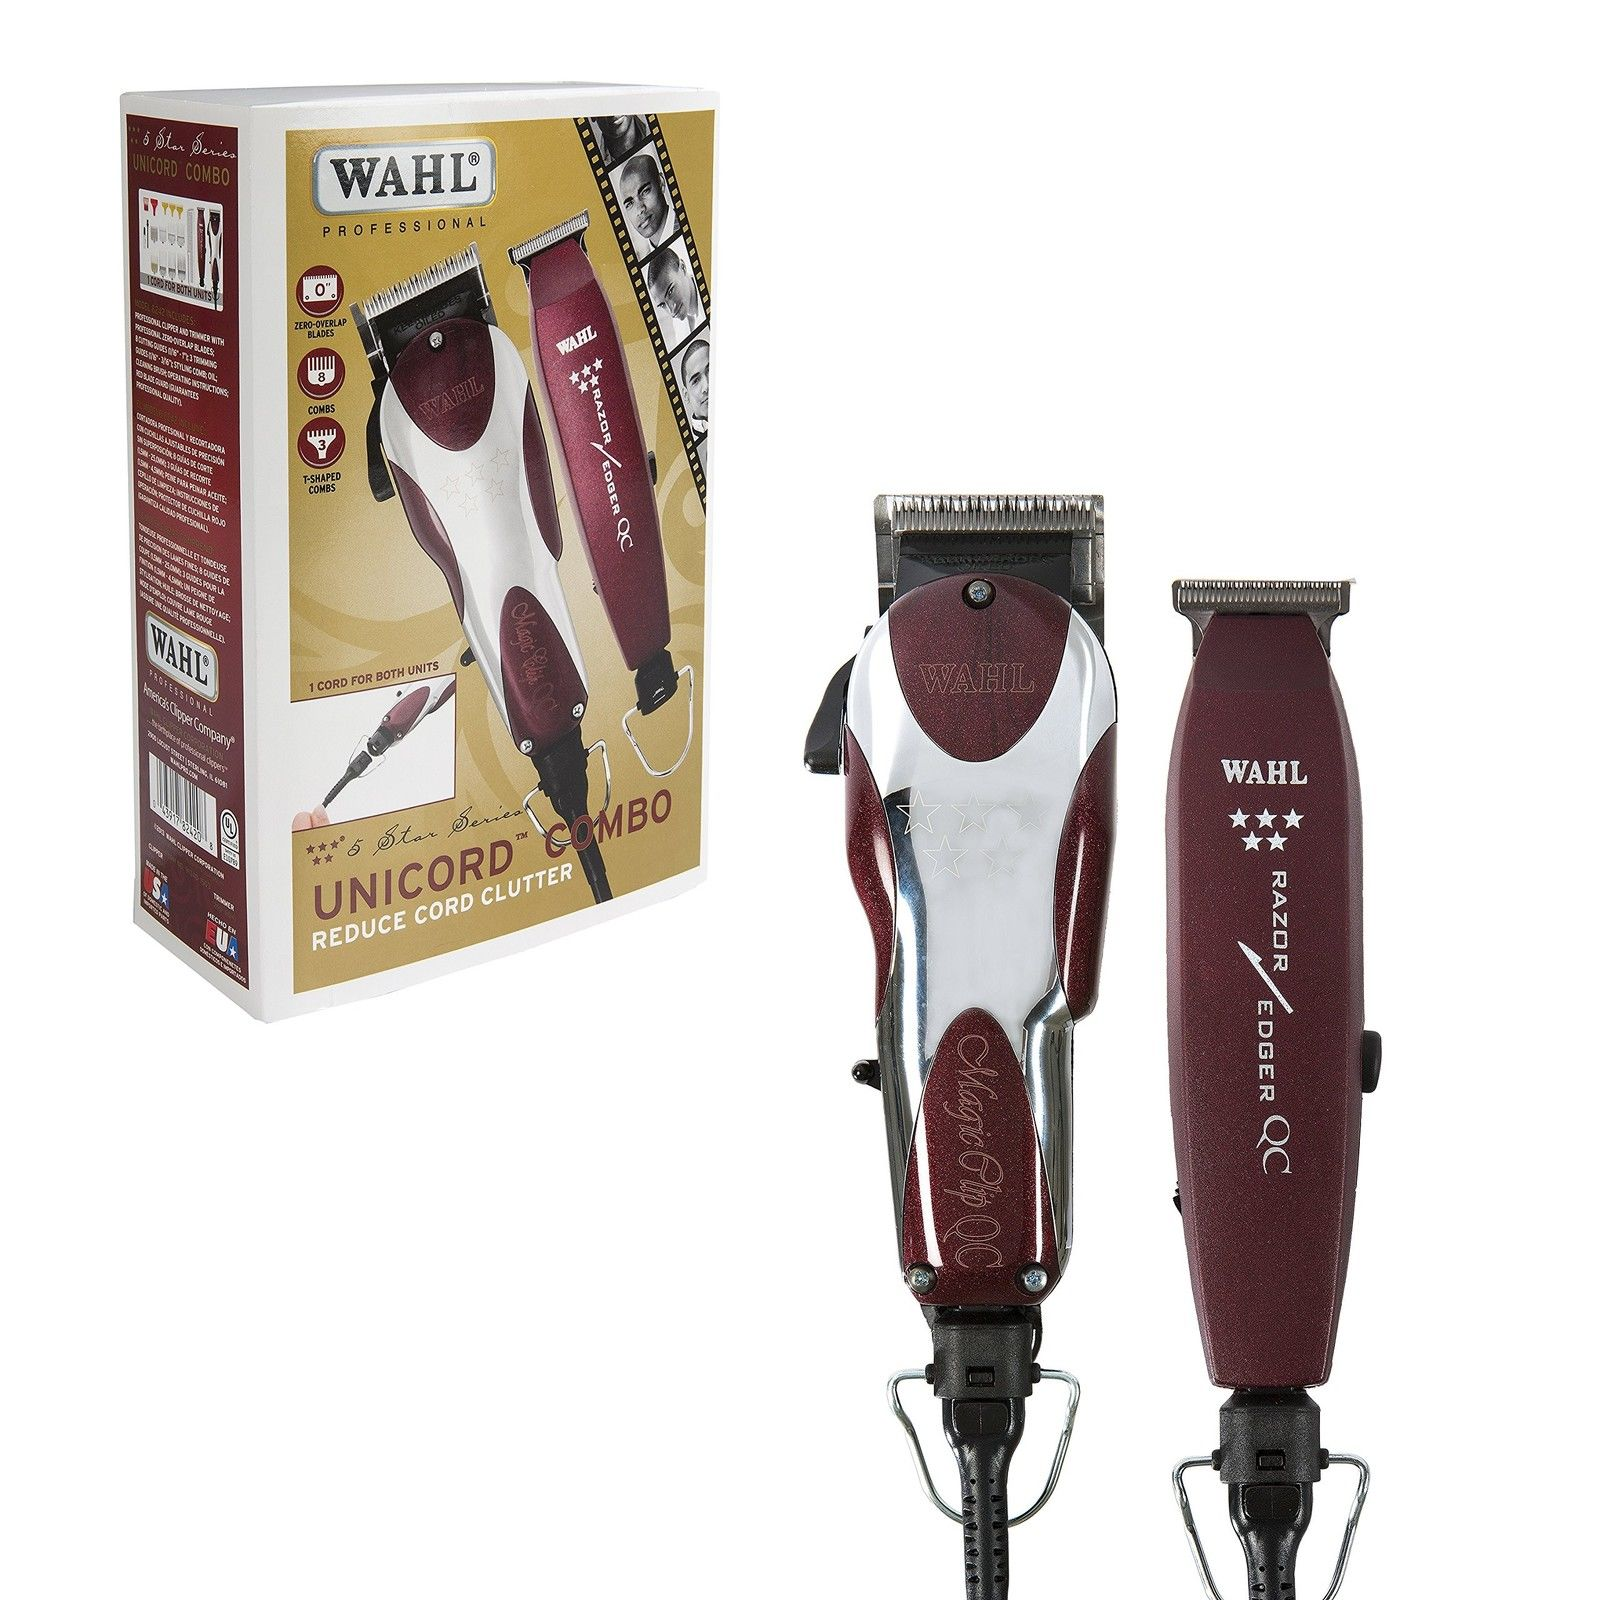 Wahl Professional 5-Star Unicord Combo (ไฟนอก 120V)